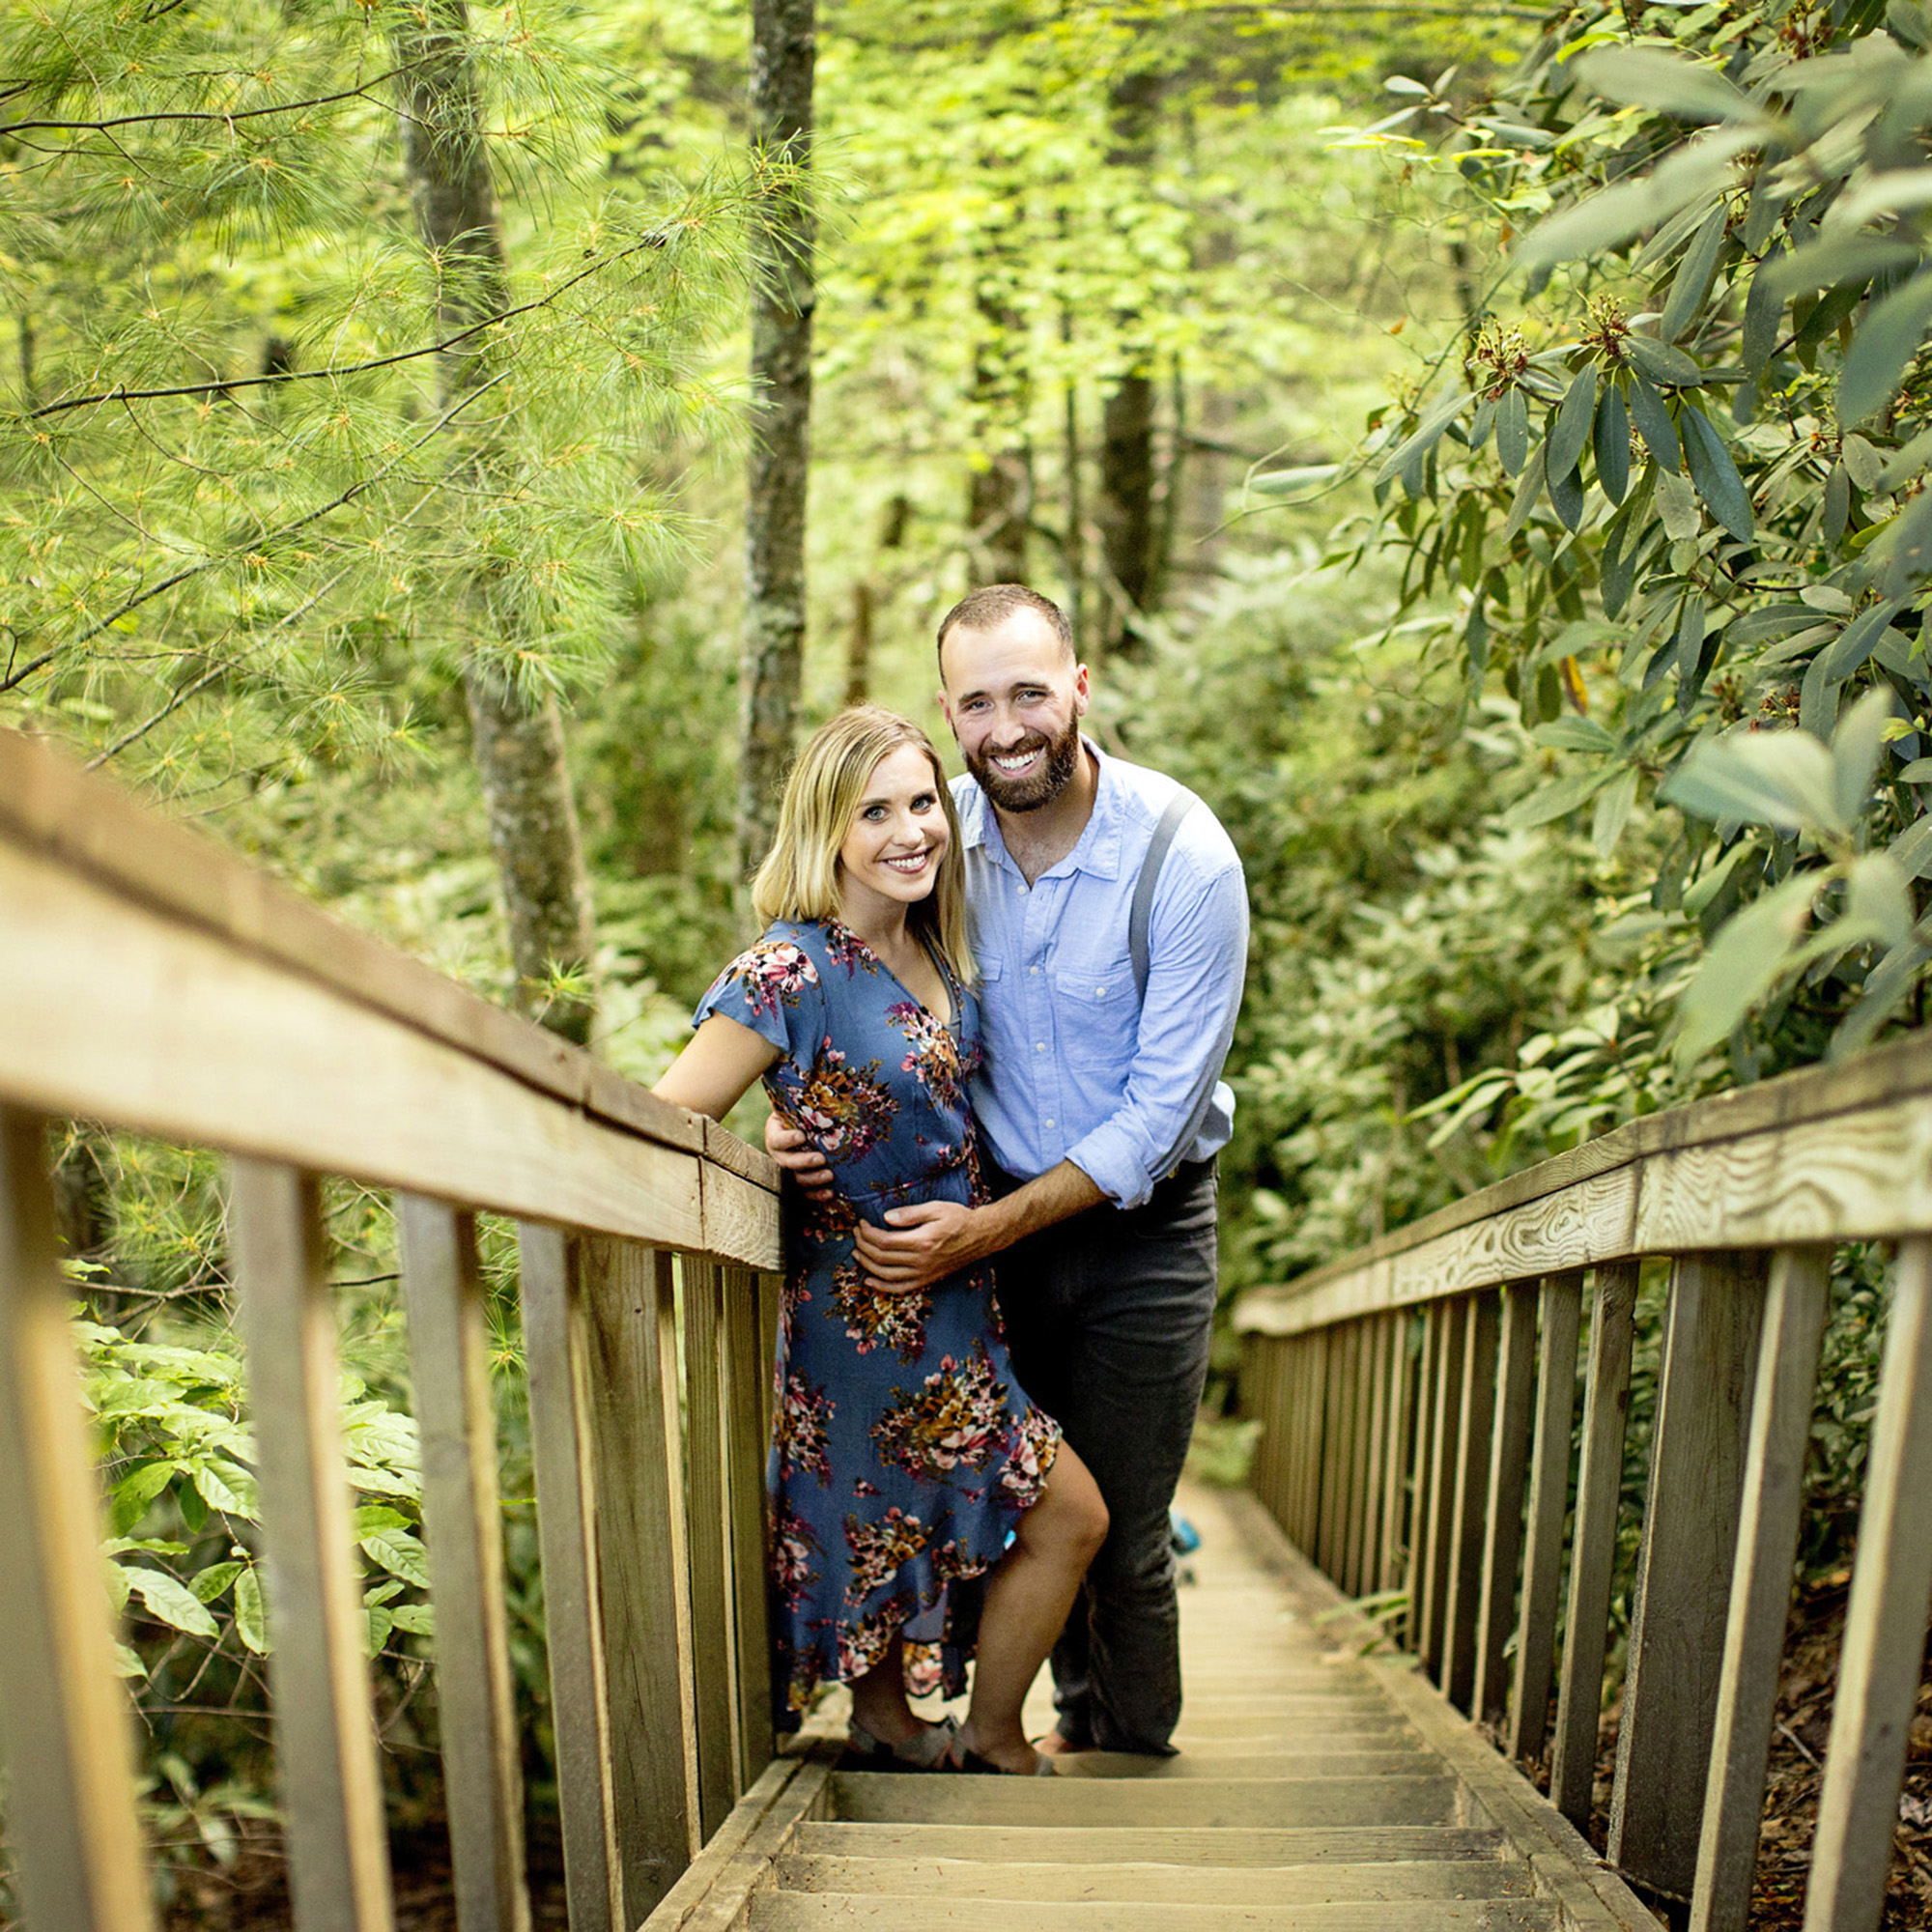 Seriously_Sabrina_Photography_Red_River_Gorge_Engagement_Session_Monika_Steven_17.jpg